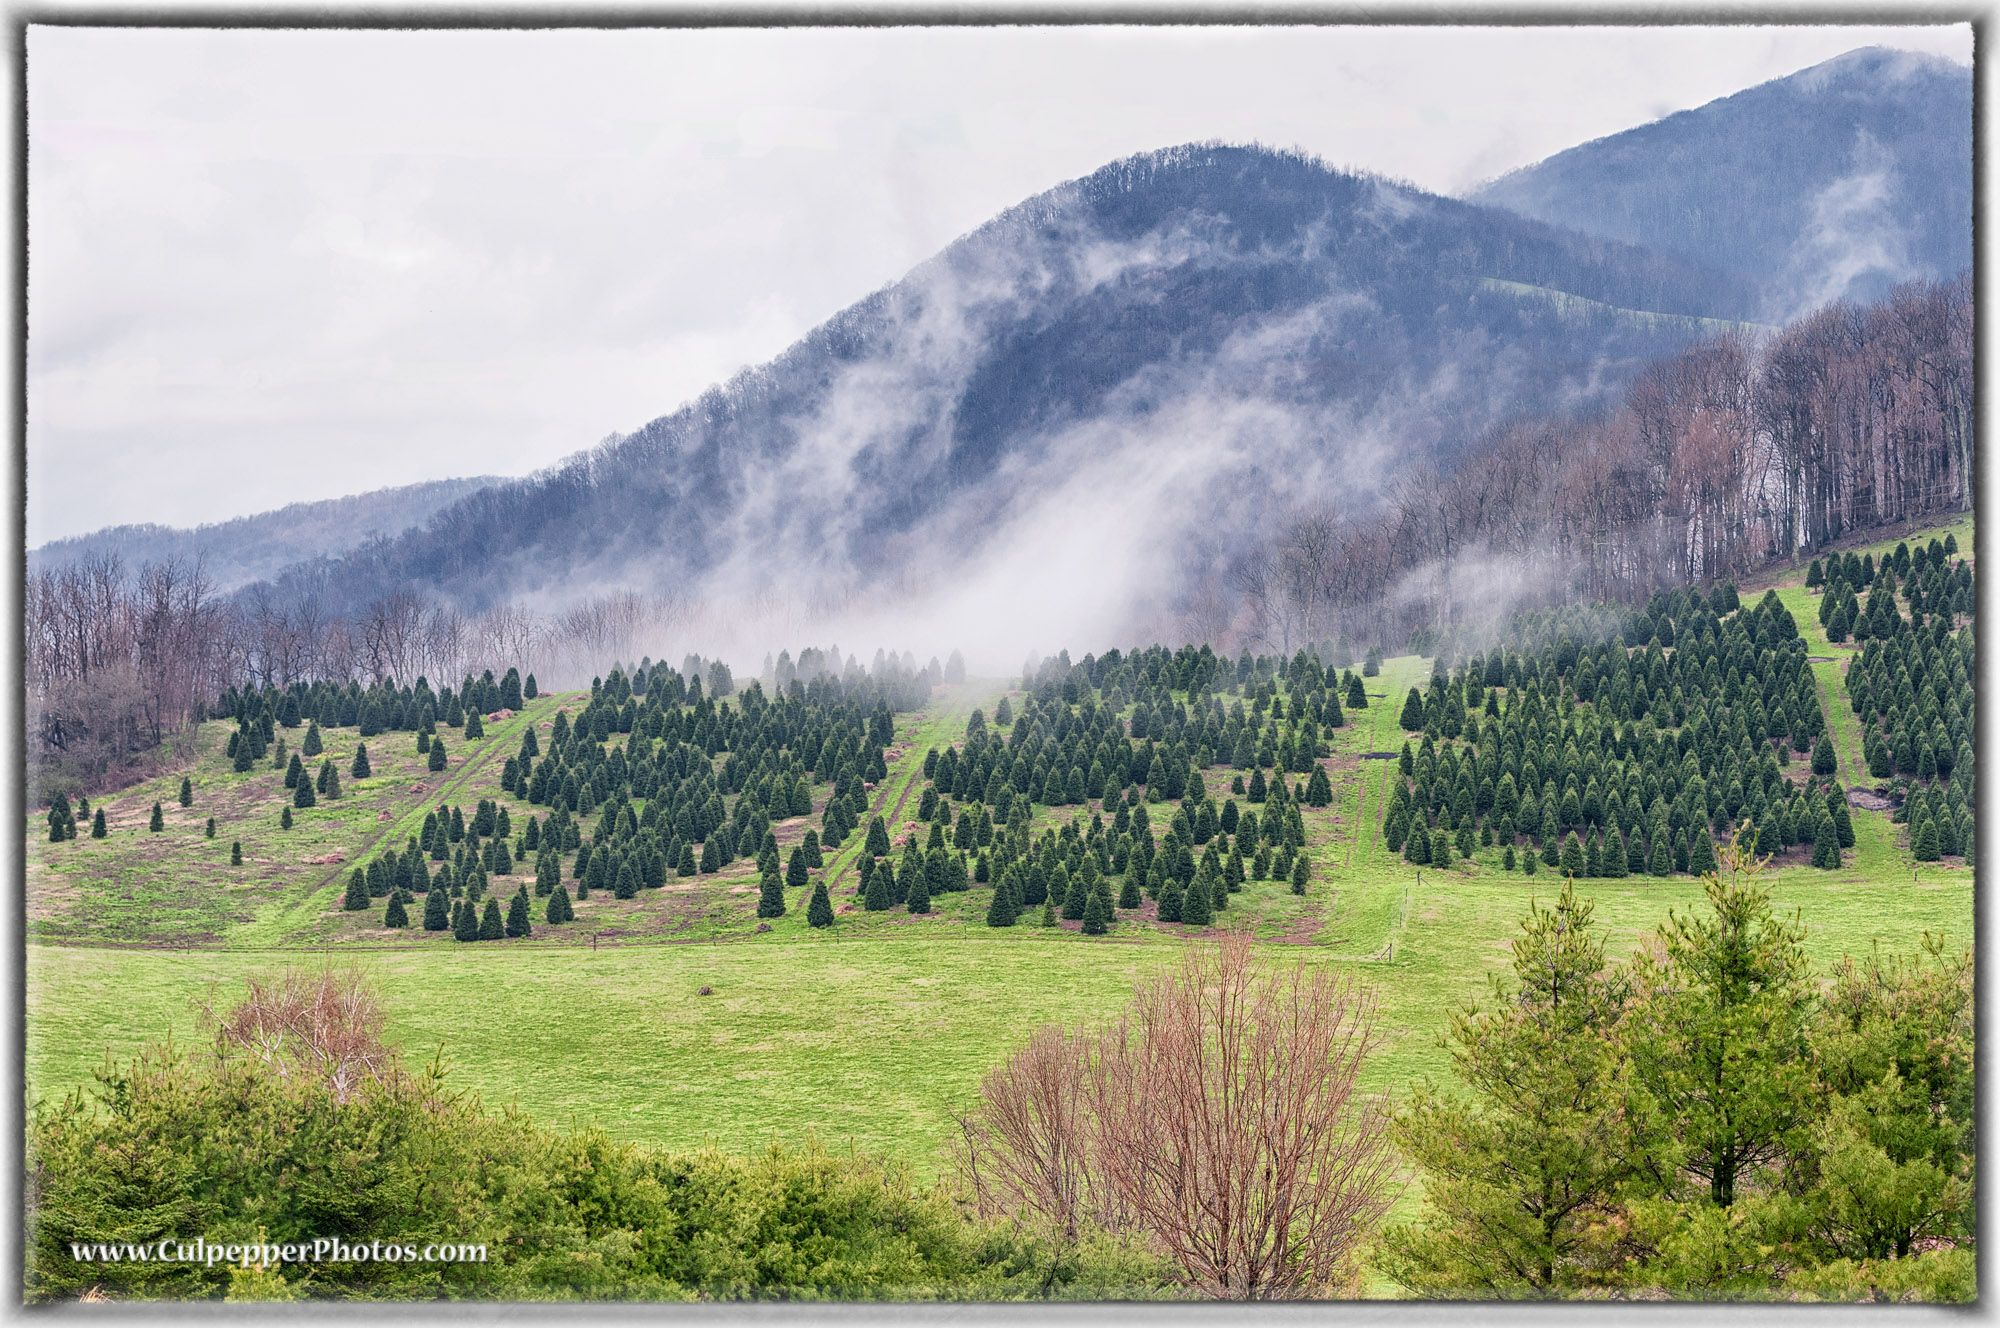 One more photo of a Christmas tree farm near Boone North